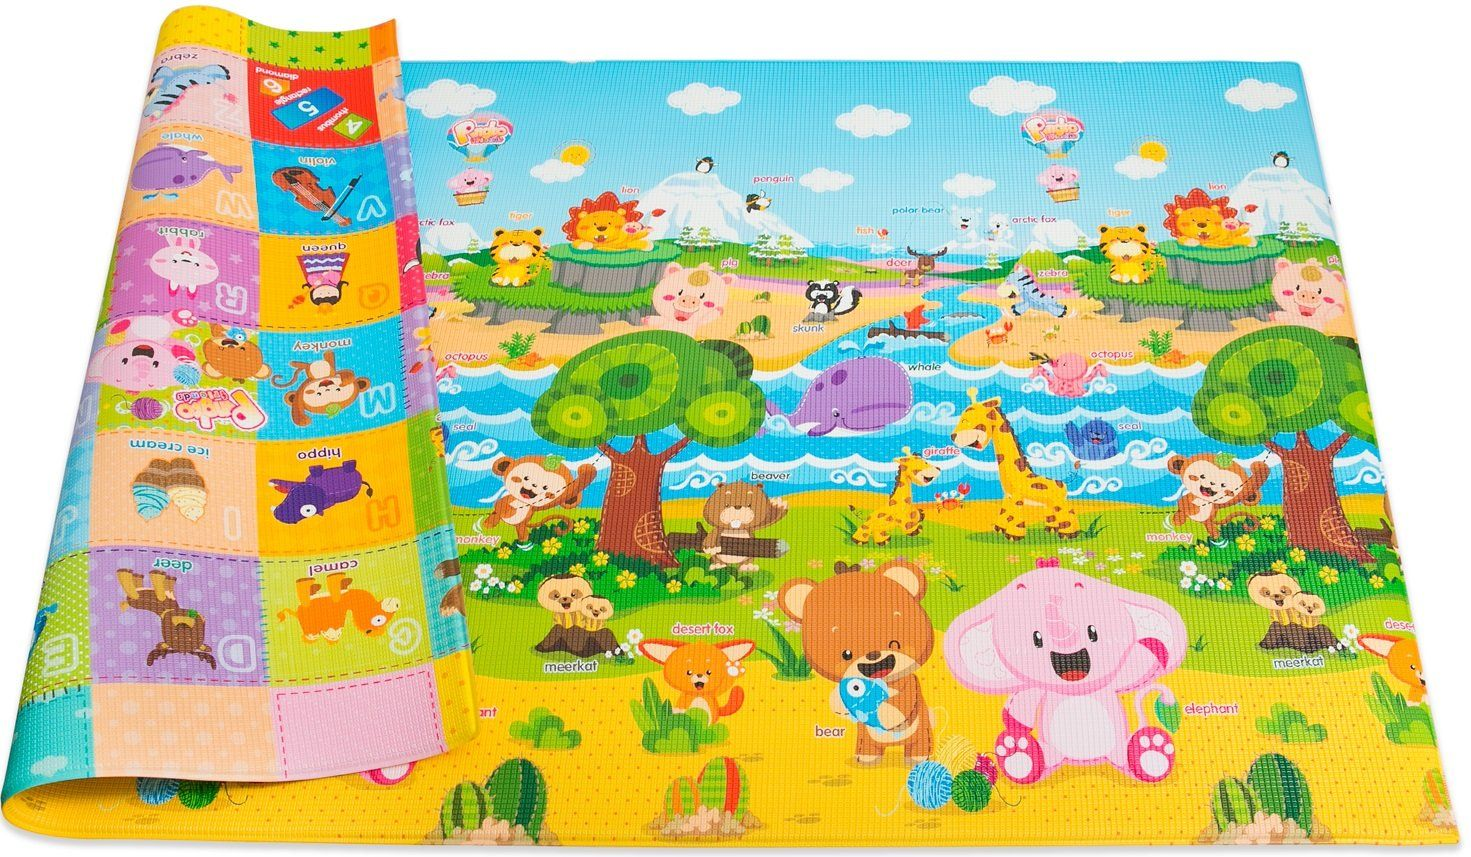 cartoon fun floors pad floor toy musical mat itm play blanket activity crawling preview gym baby